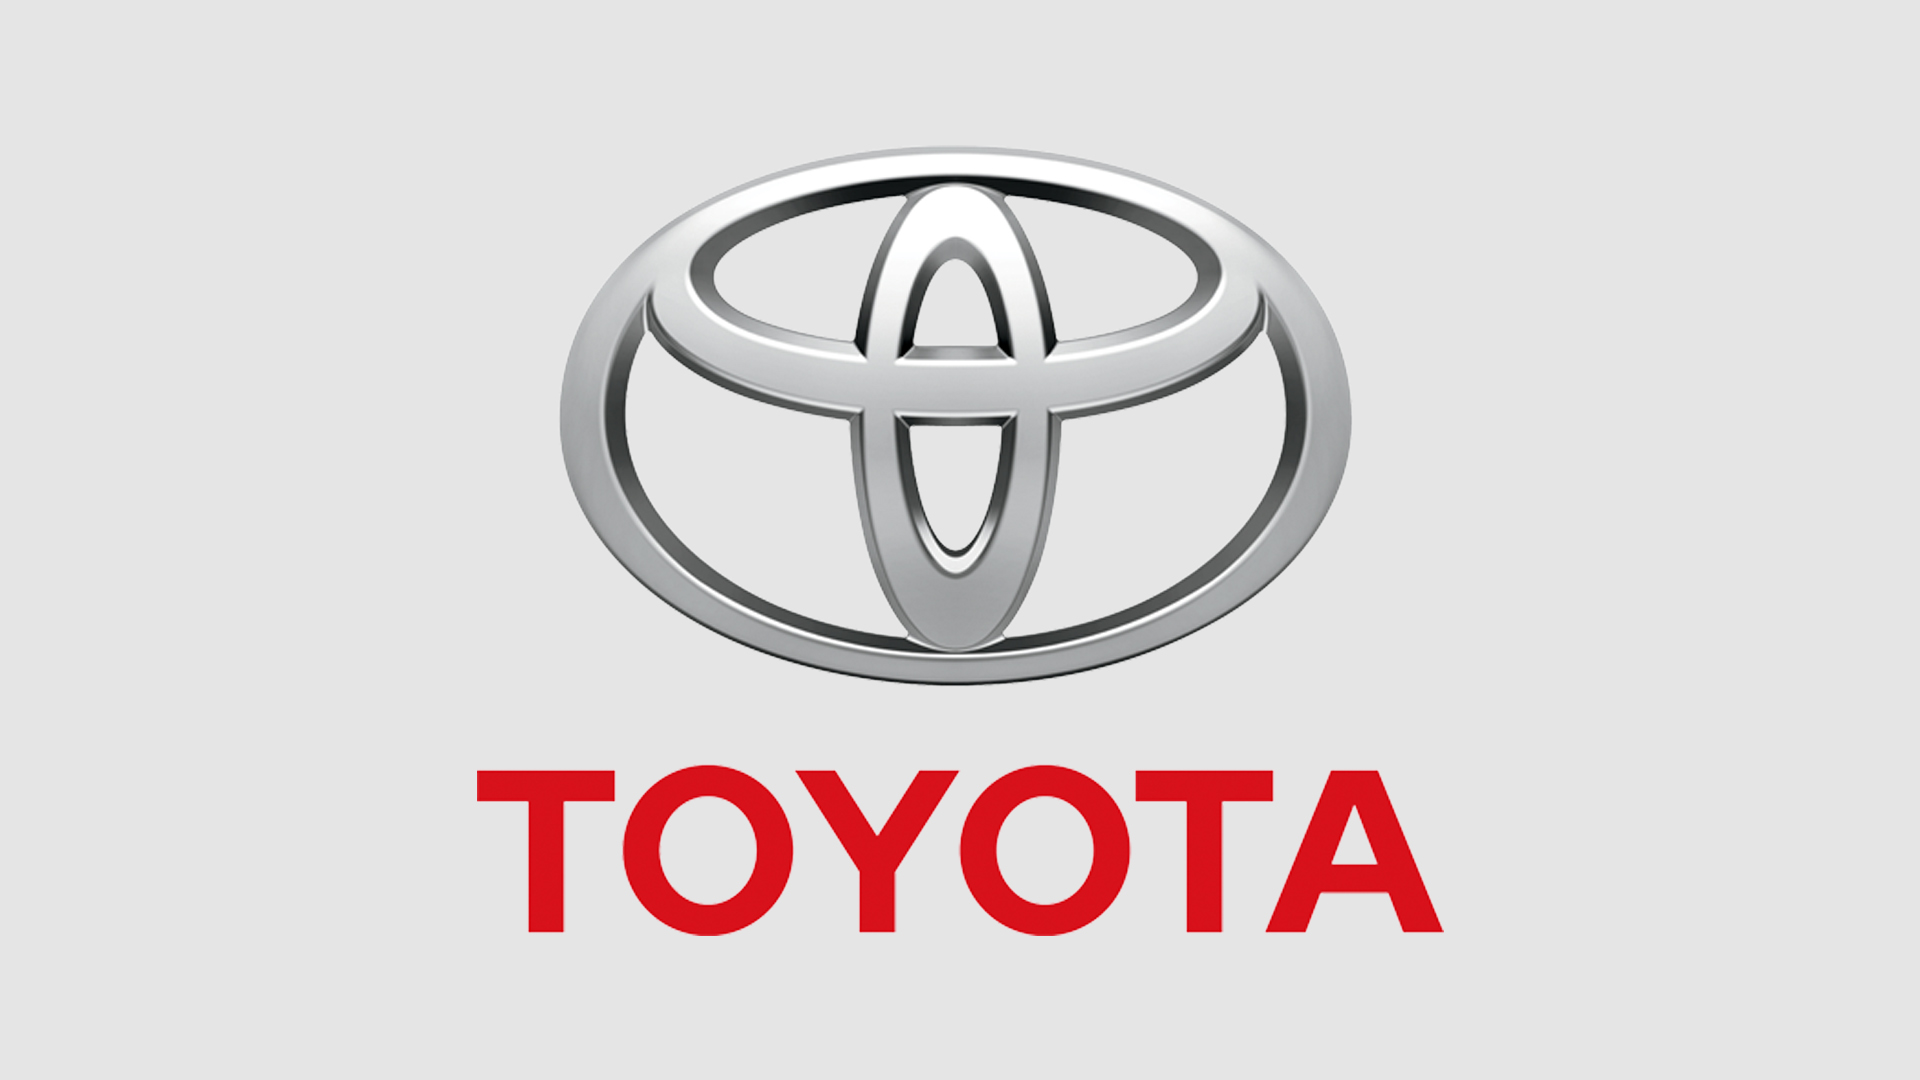 Is Toyota's logo cleverer than it looks? | Creative Bloq